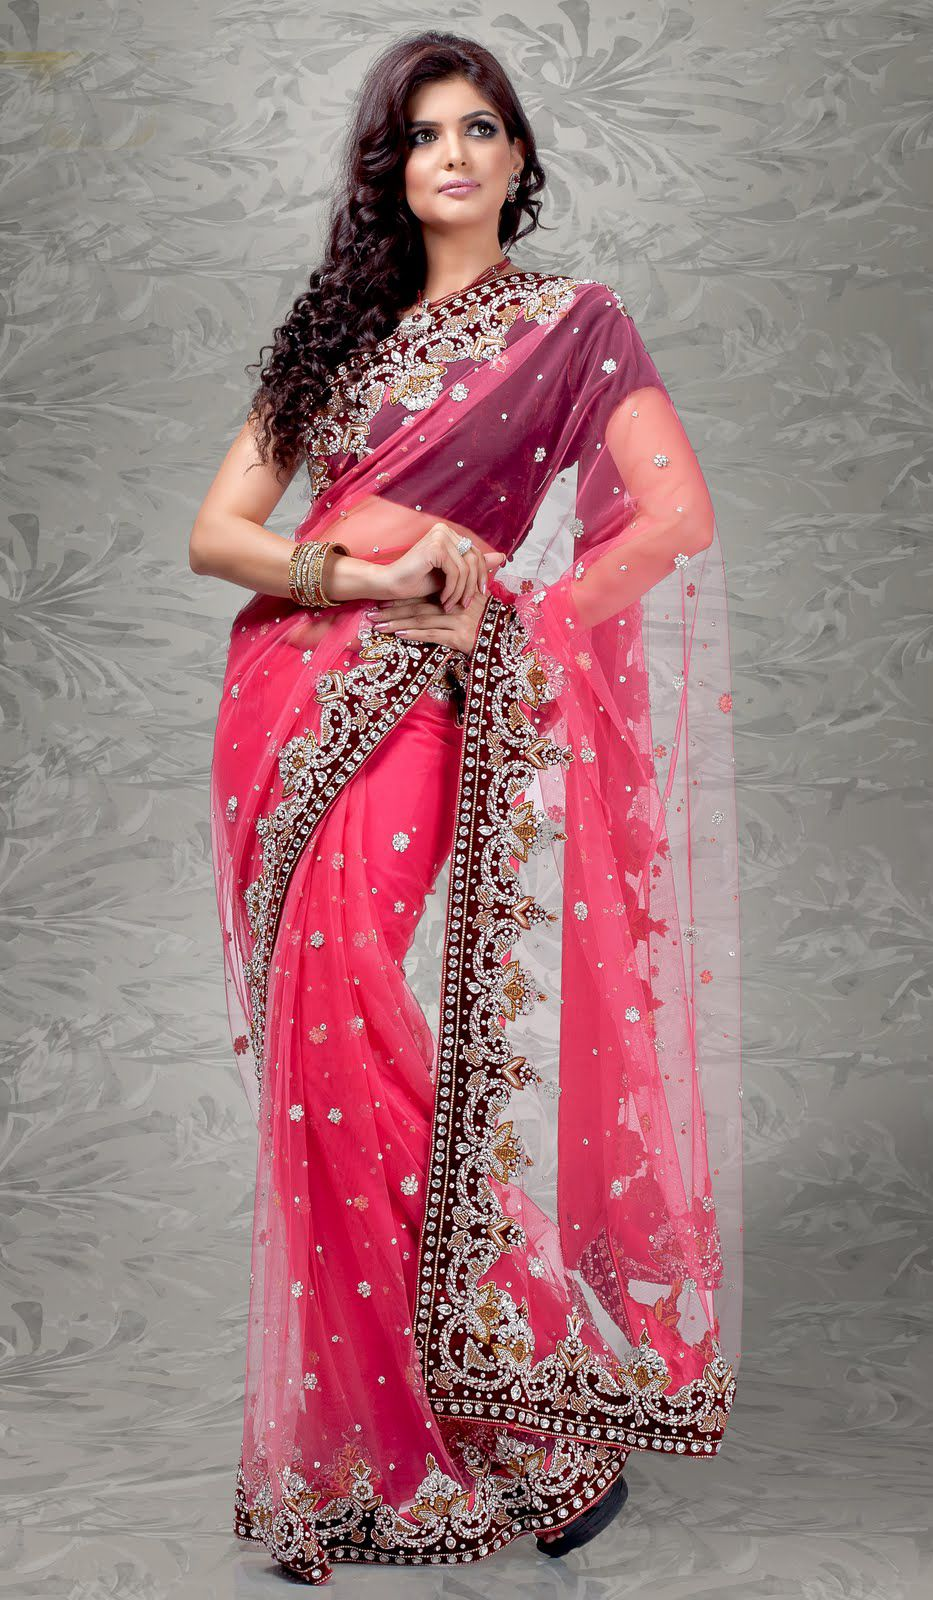 Amazing Pink Color Gloosy Netted #Designer #Saree | Designer Sarees ...